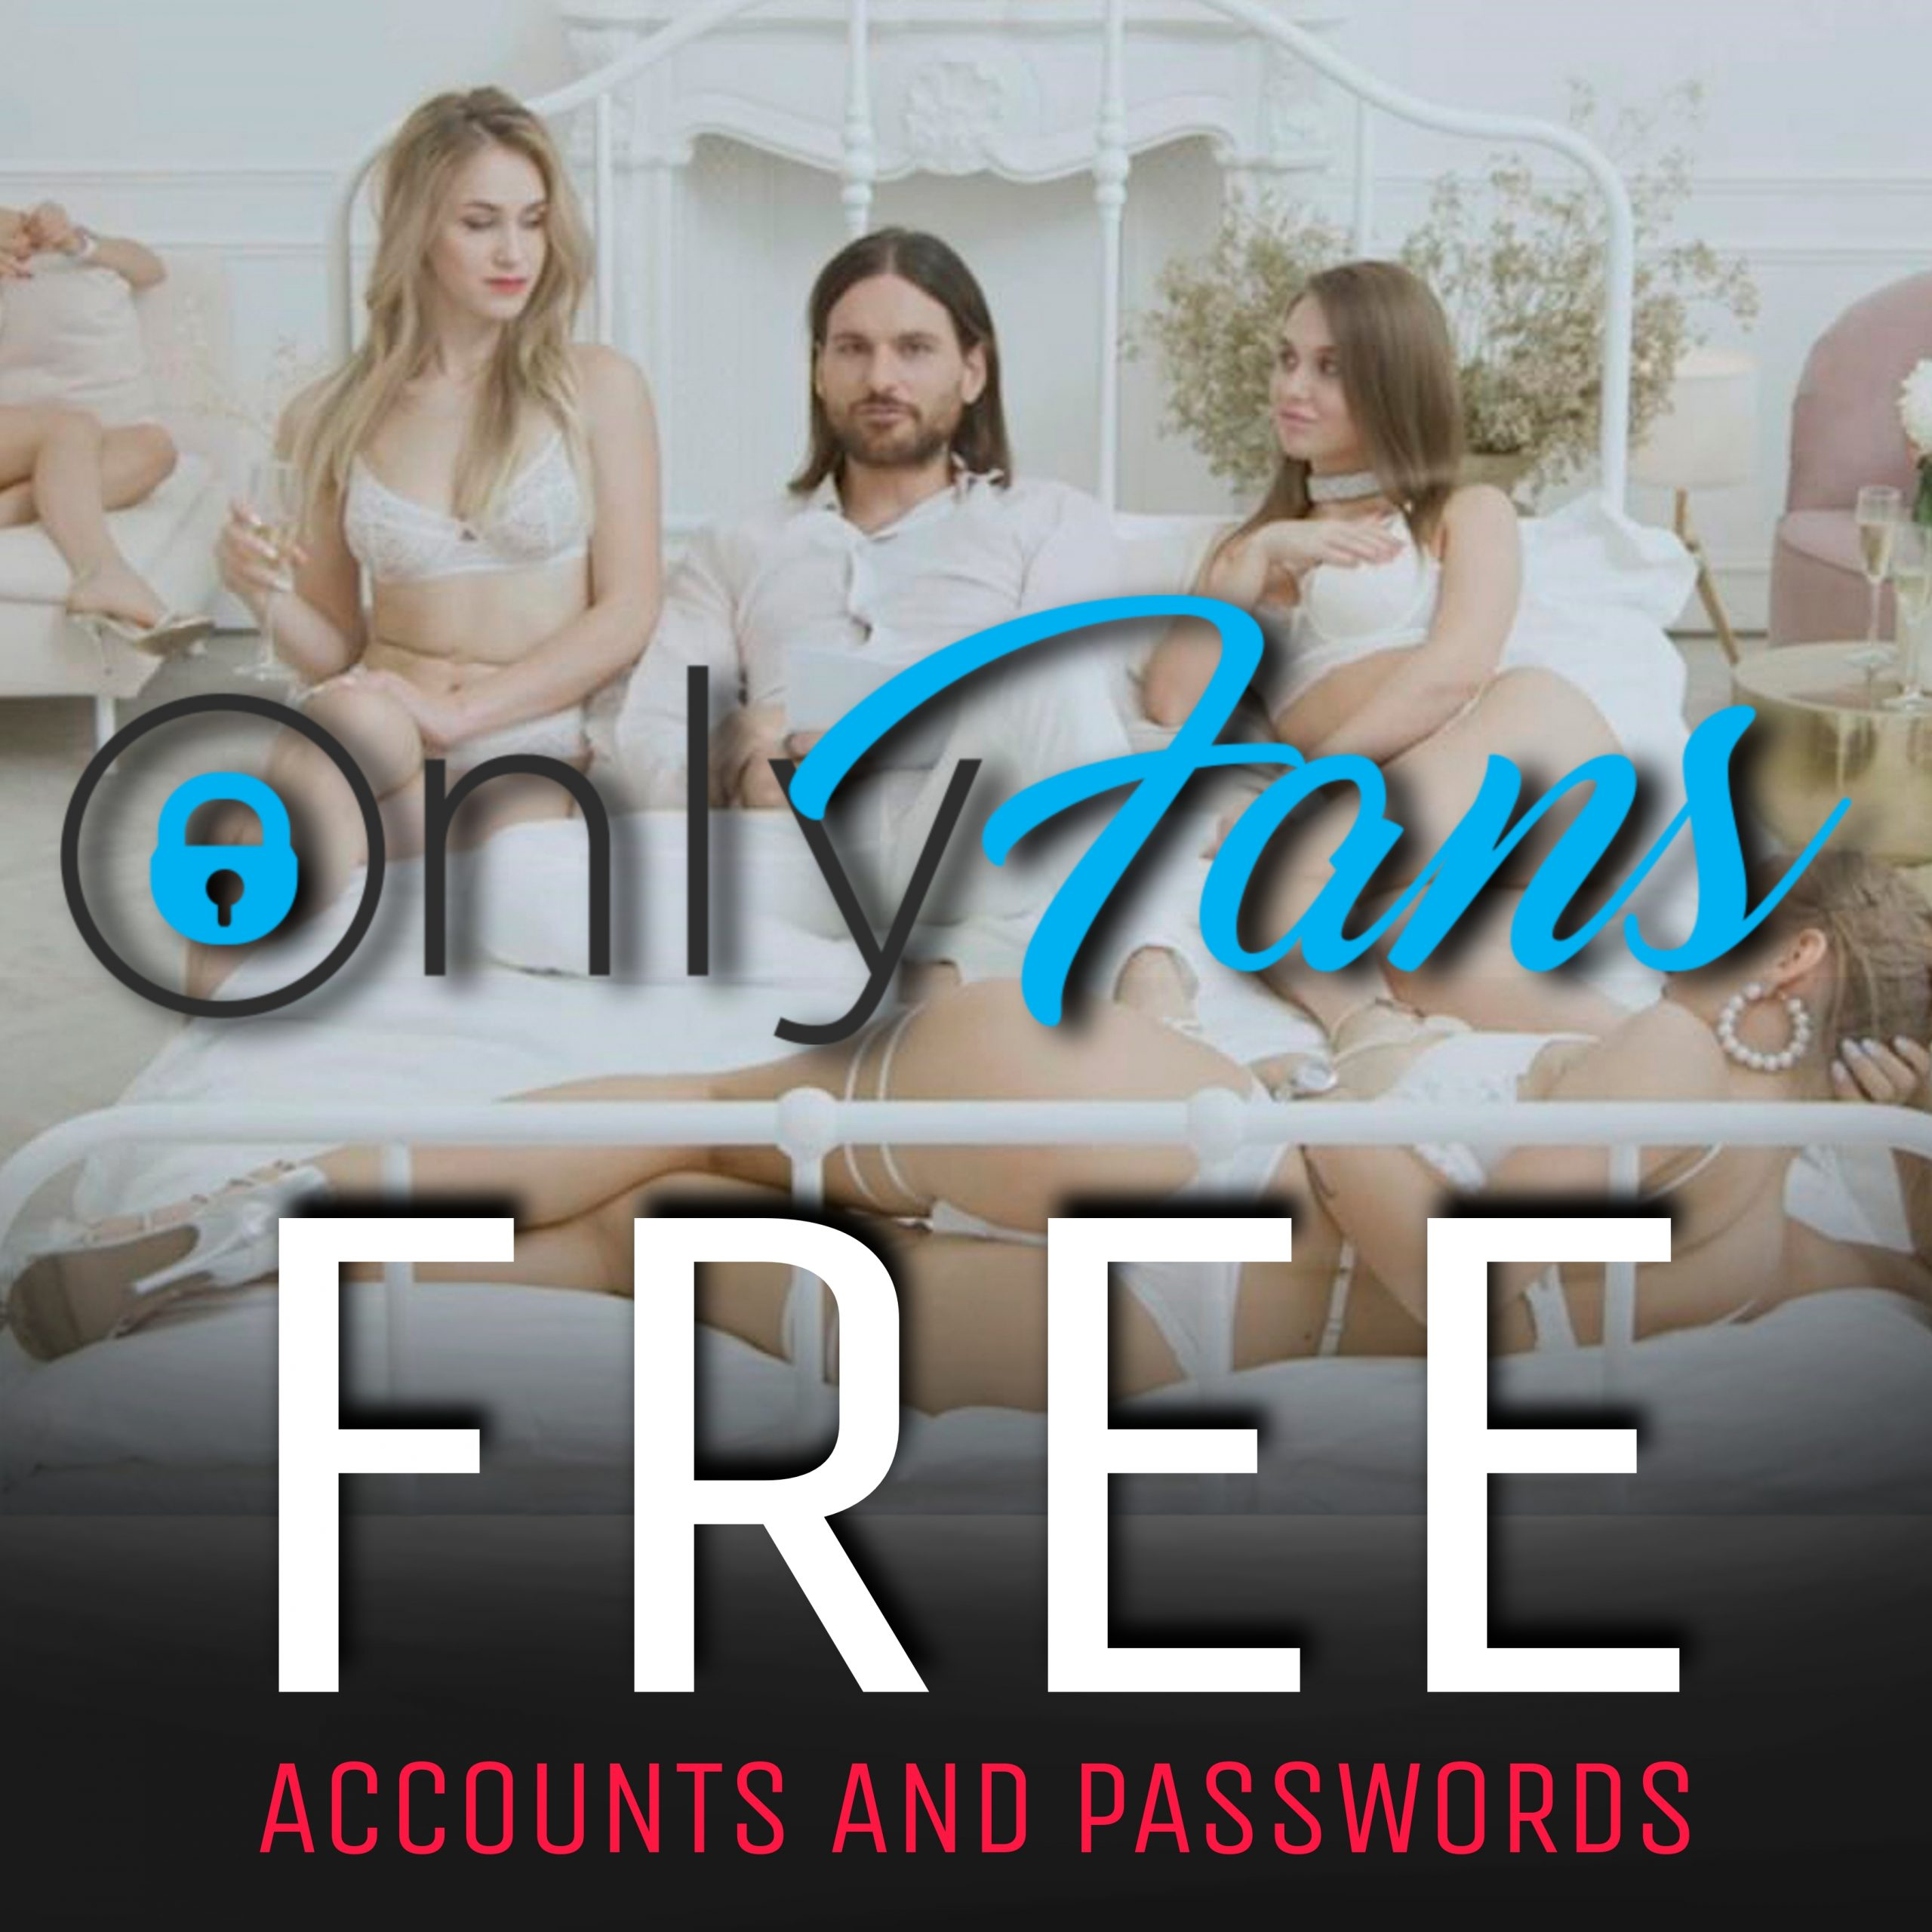 Onlyfans free account and password